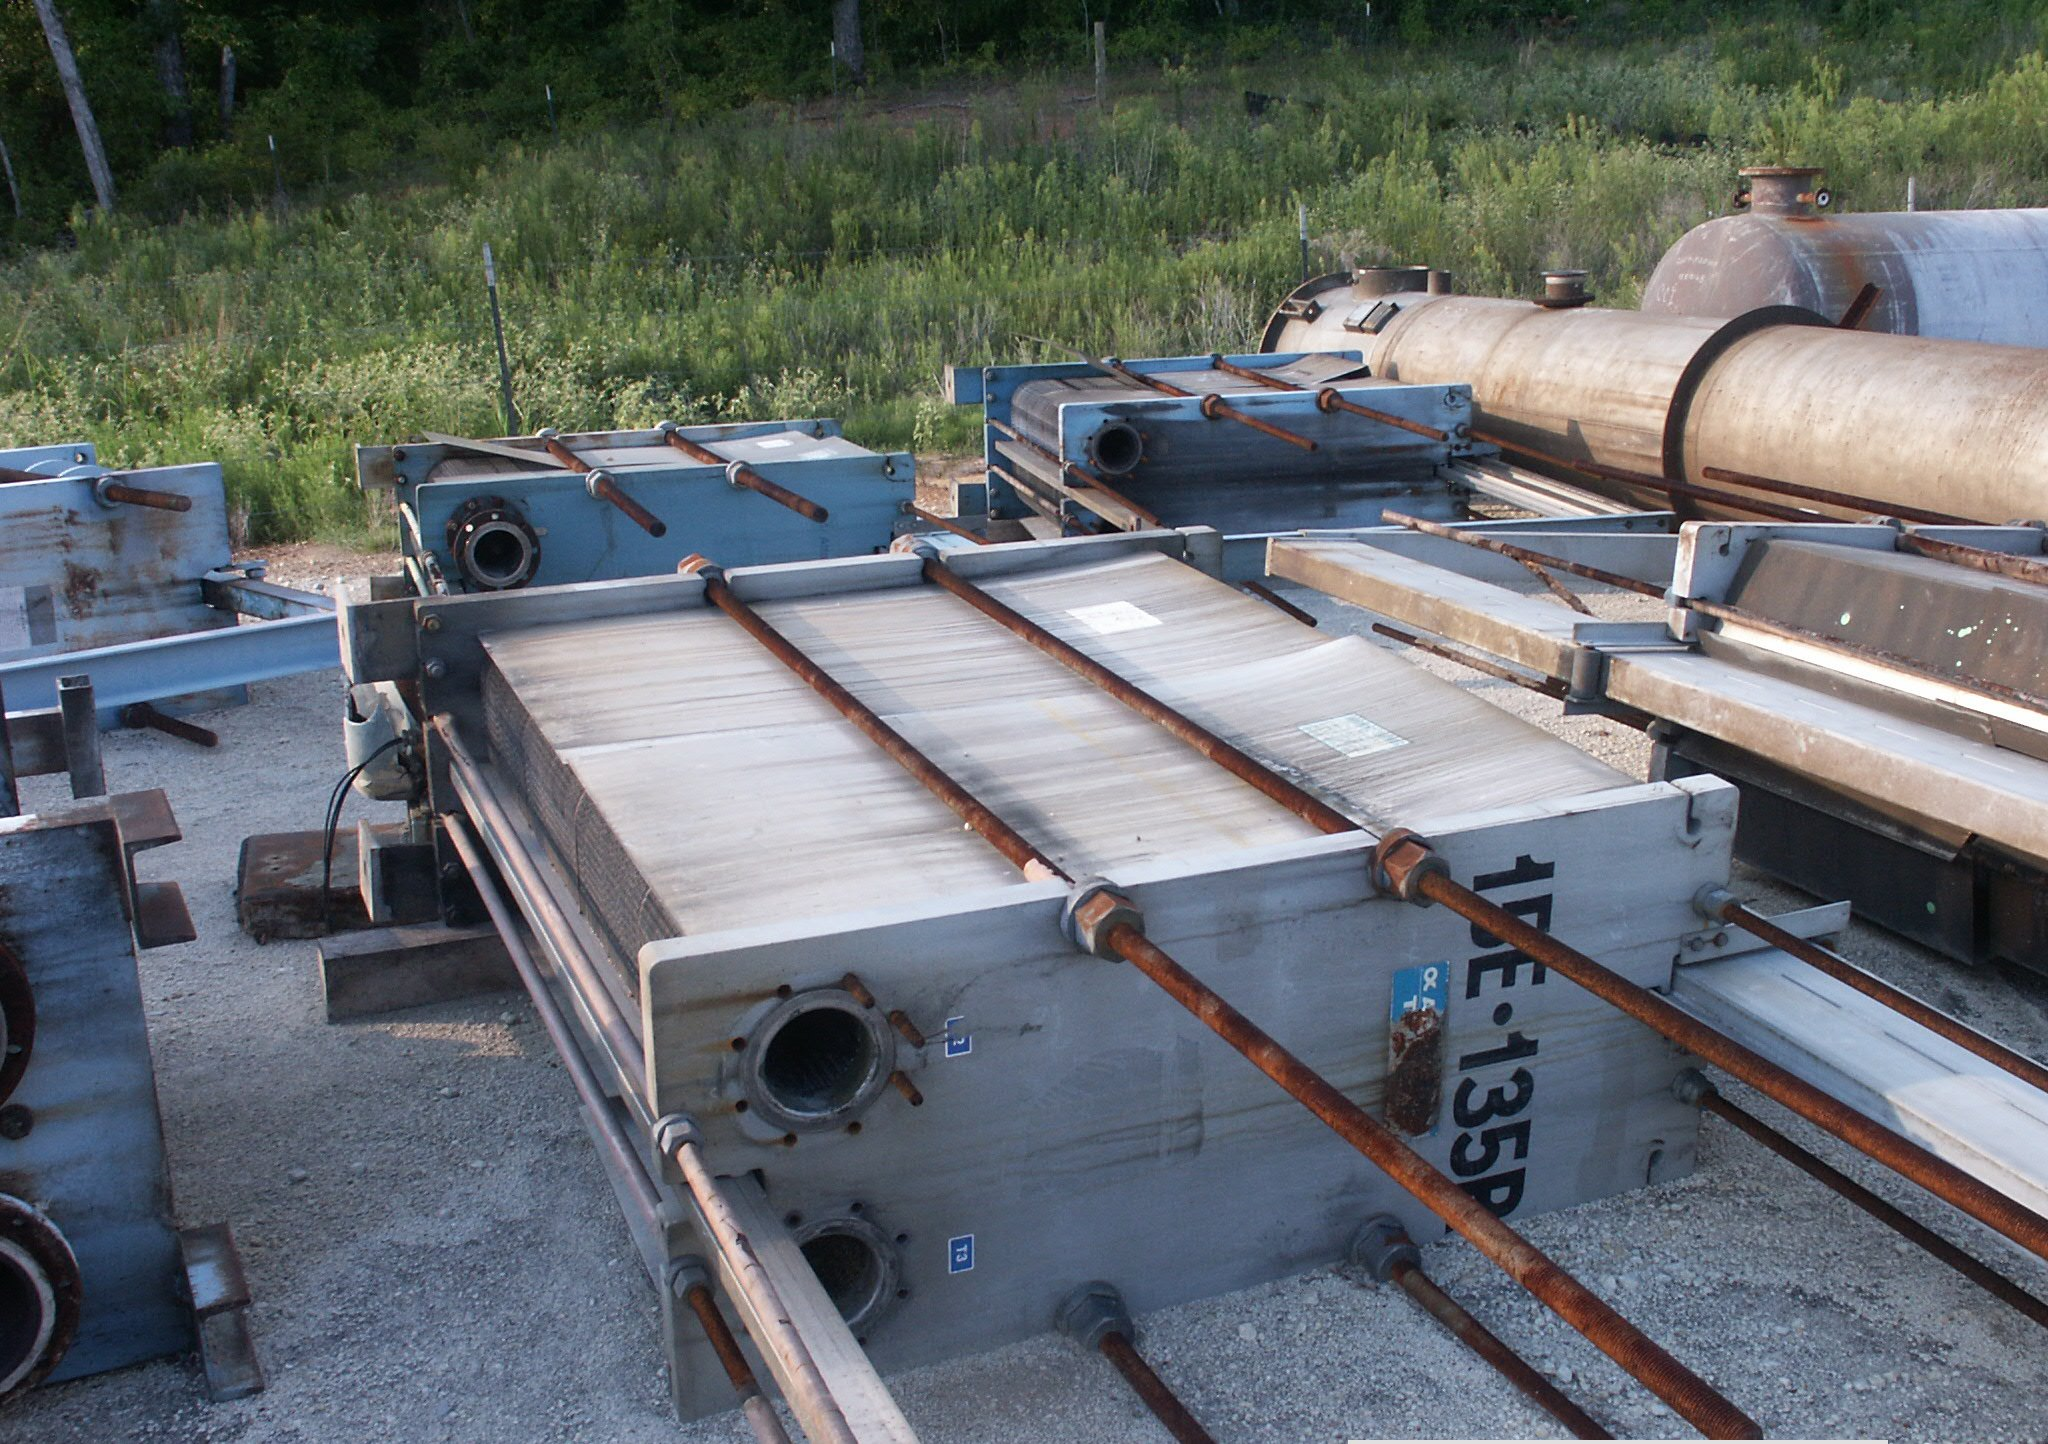 4600 Sq.Ft. ALFA LAVAL model A15-BFG. Stainless Steel plate heat exchanger. 592 Stainless Steel plates. 6